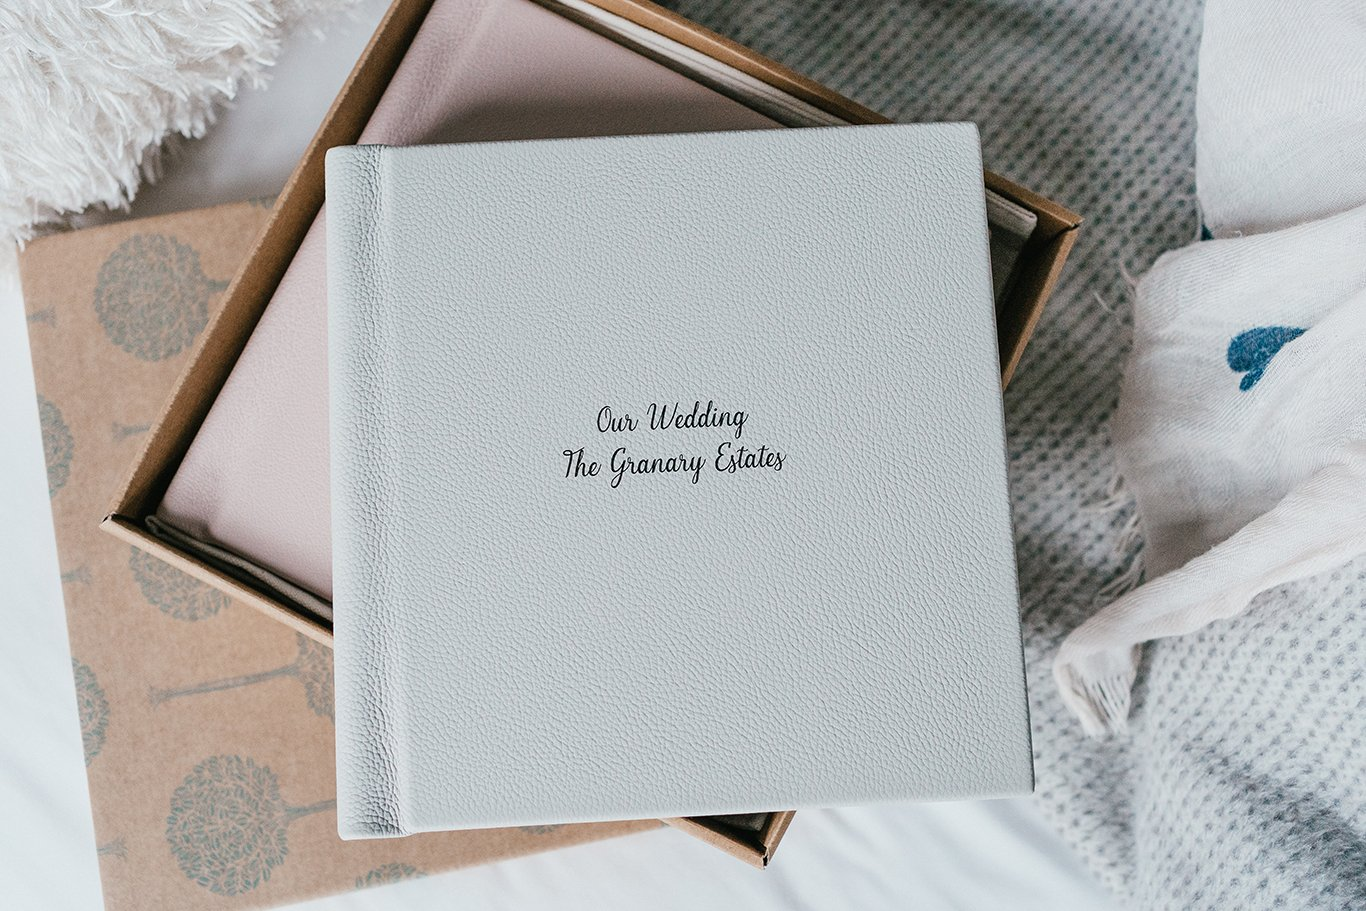 Wedding album in a box on a bed